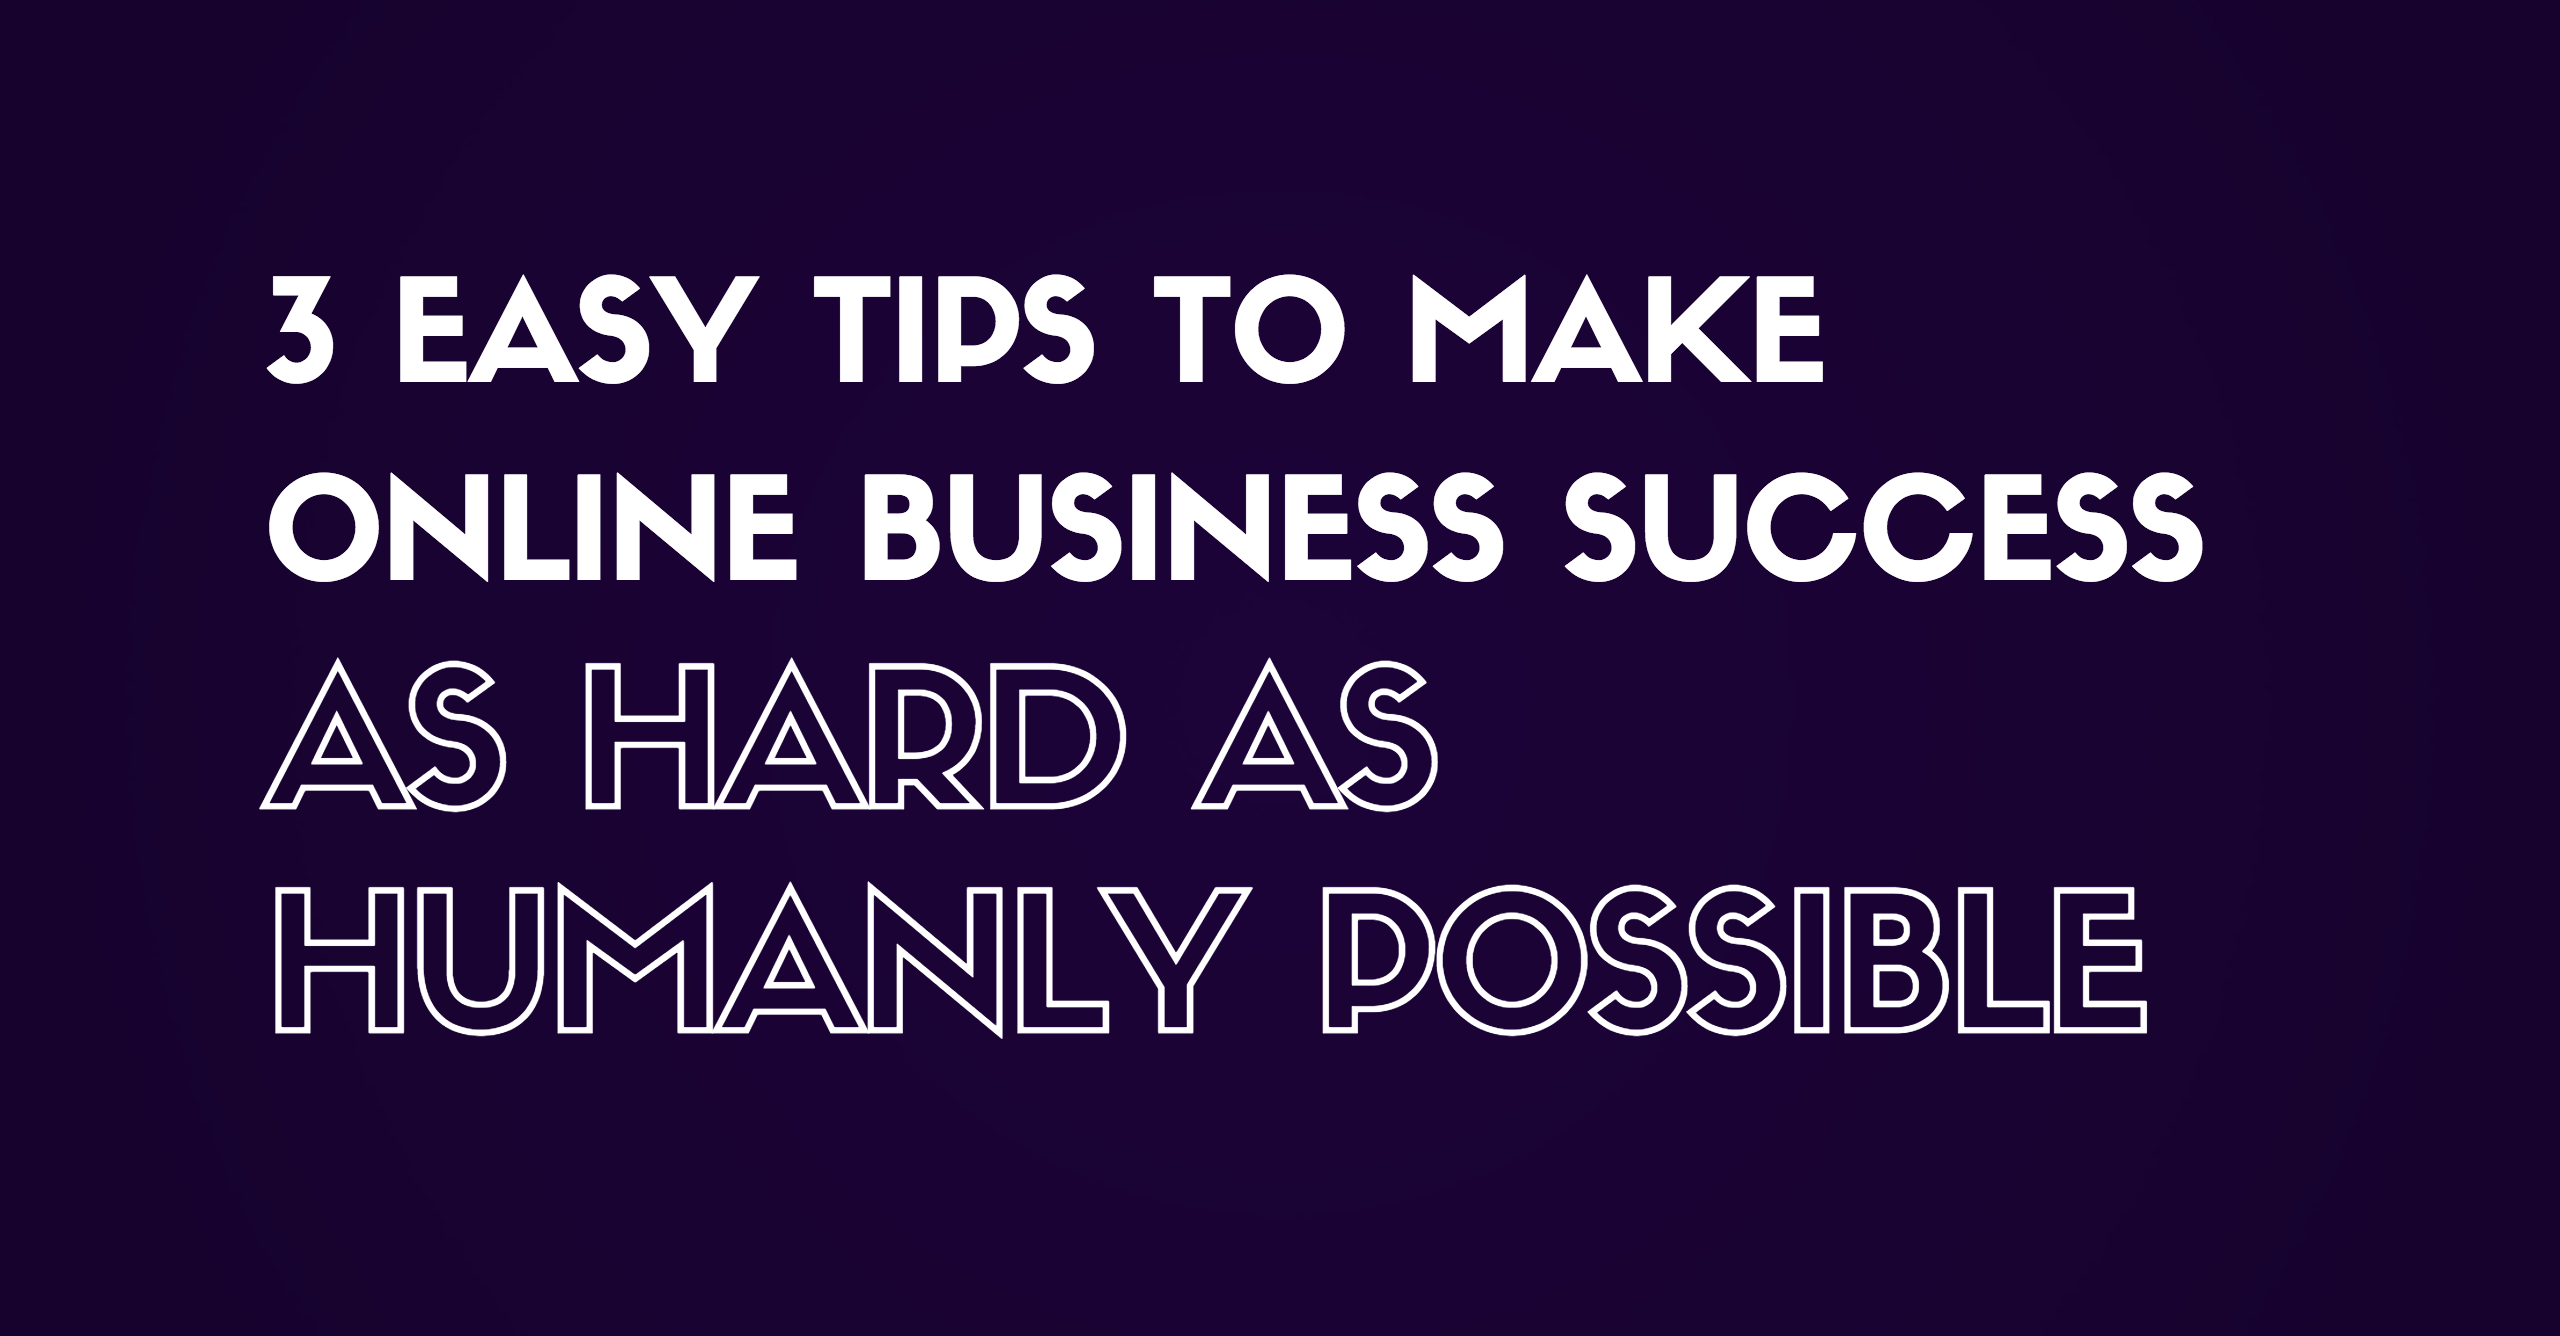 3 Tips to Make Online Business Success As Hard As Humanly Possible